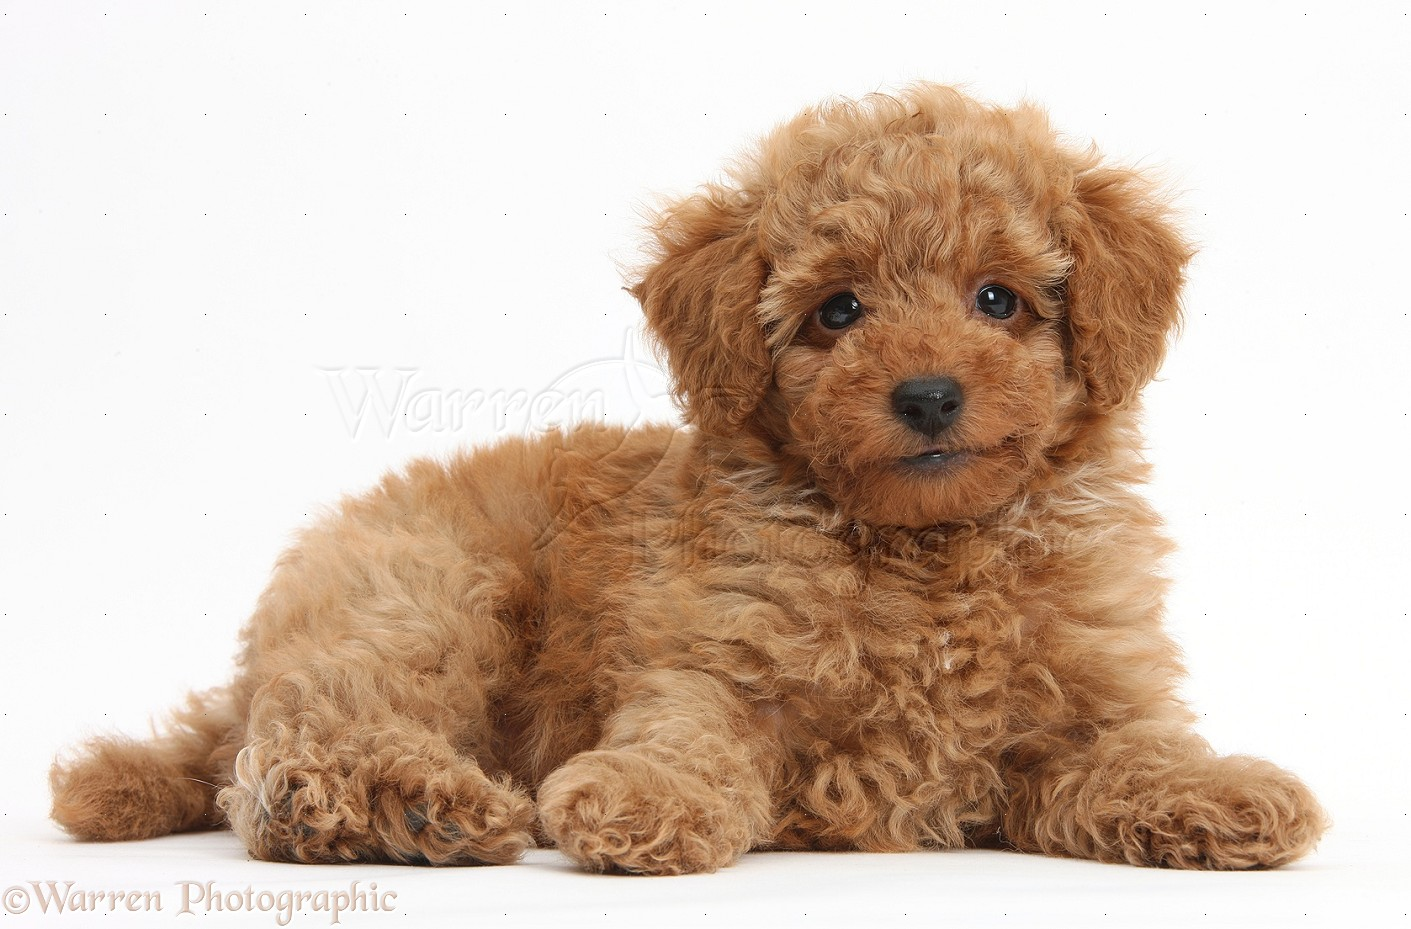 Dog: Cute red Toy Poodle puppy photo  WP38746